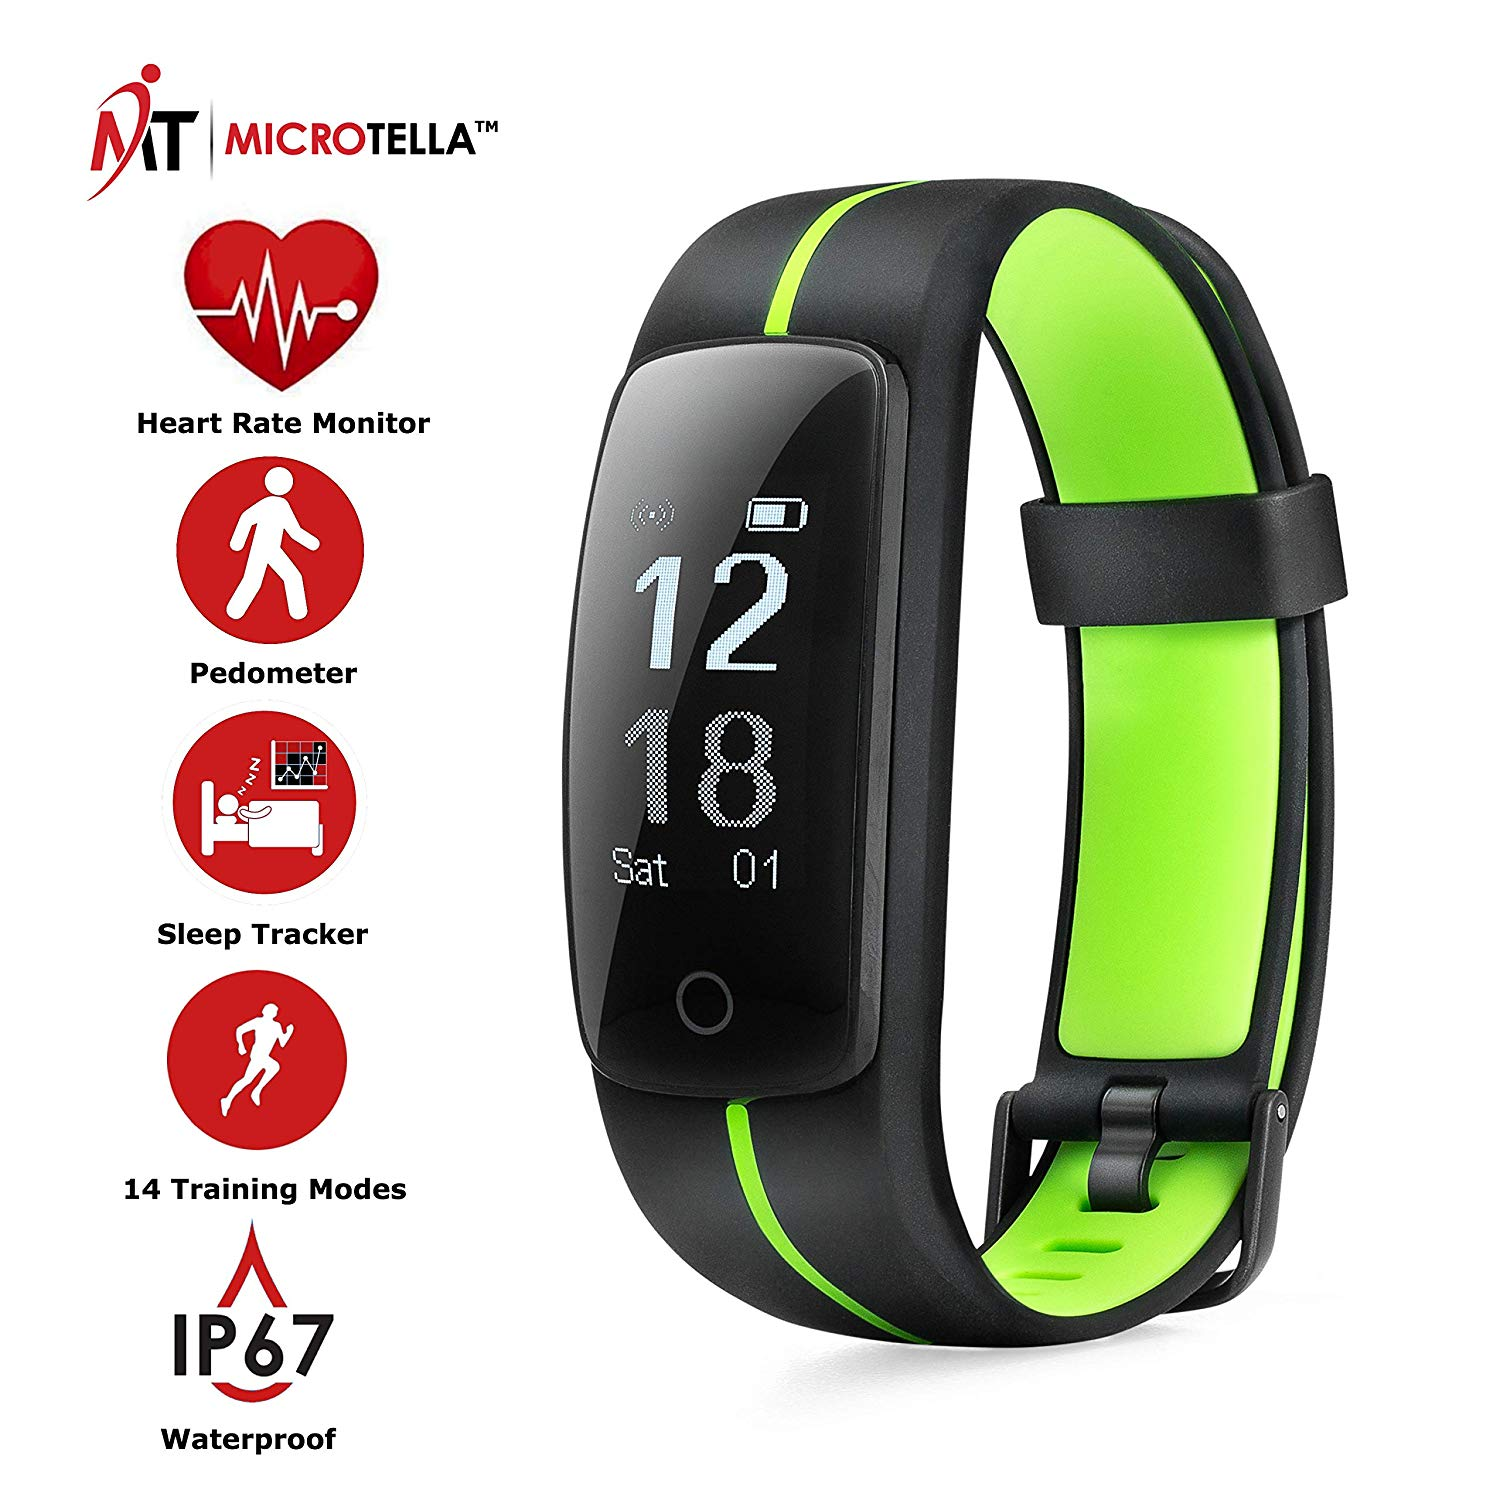 MICROTELLA Fitness Tracker Waterproof, Smart Activity Watch, Smart Band with Step Counter, Calorie Counter Watch, GPS Band, Fitness Tracker With Heart Rate Monitor, Pedometer Watch for iOS and Android